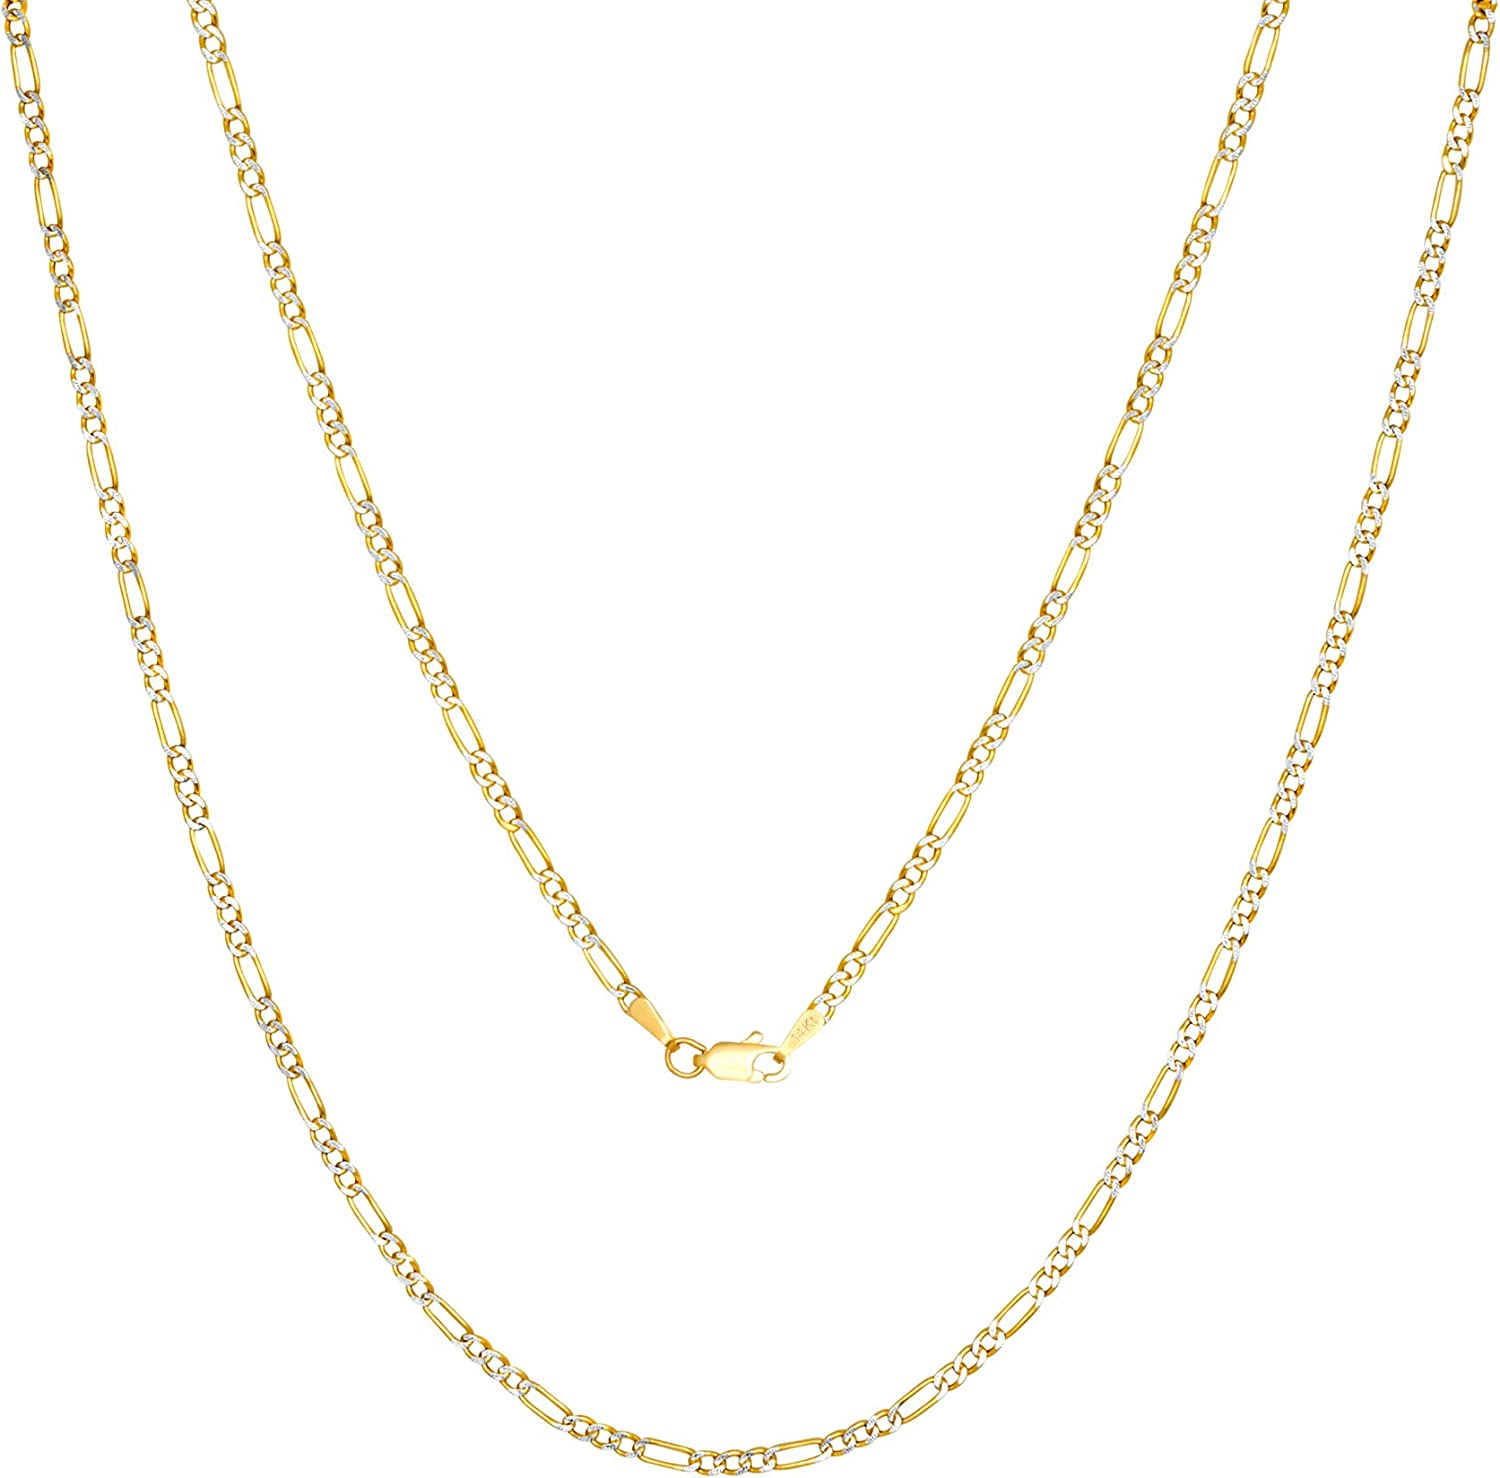 Nuragold 14k Yellow Gold 2.5mm Figaro Chain Link Diamond Cut Pave Two Tone Pendant Necklace, Mens Womens Lobster Lock 16